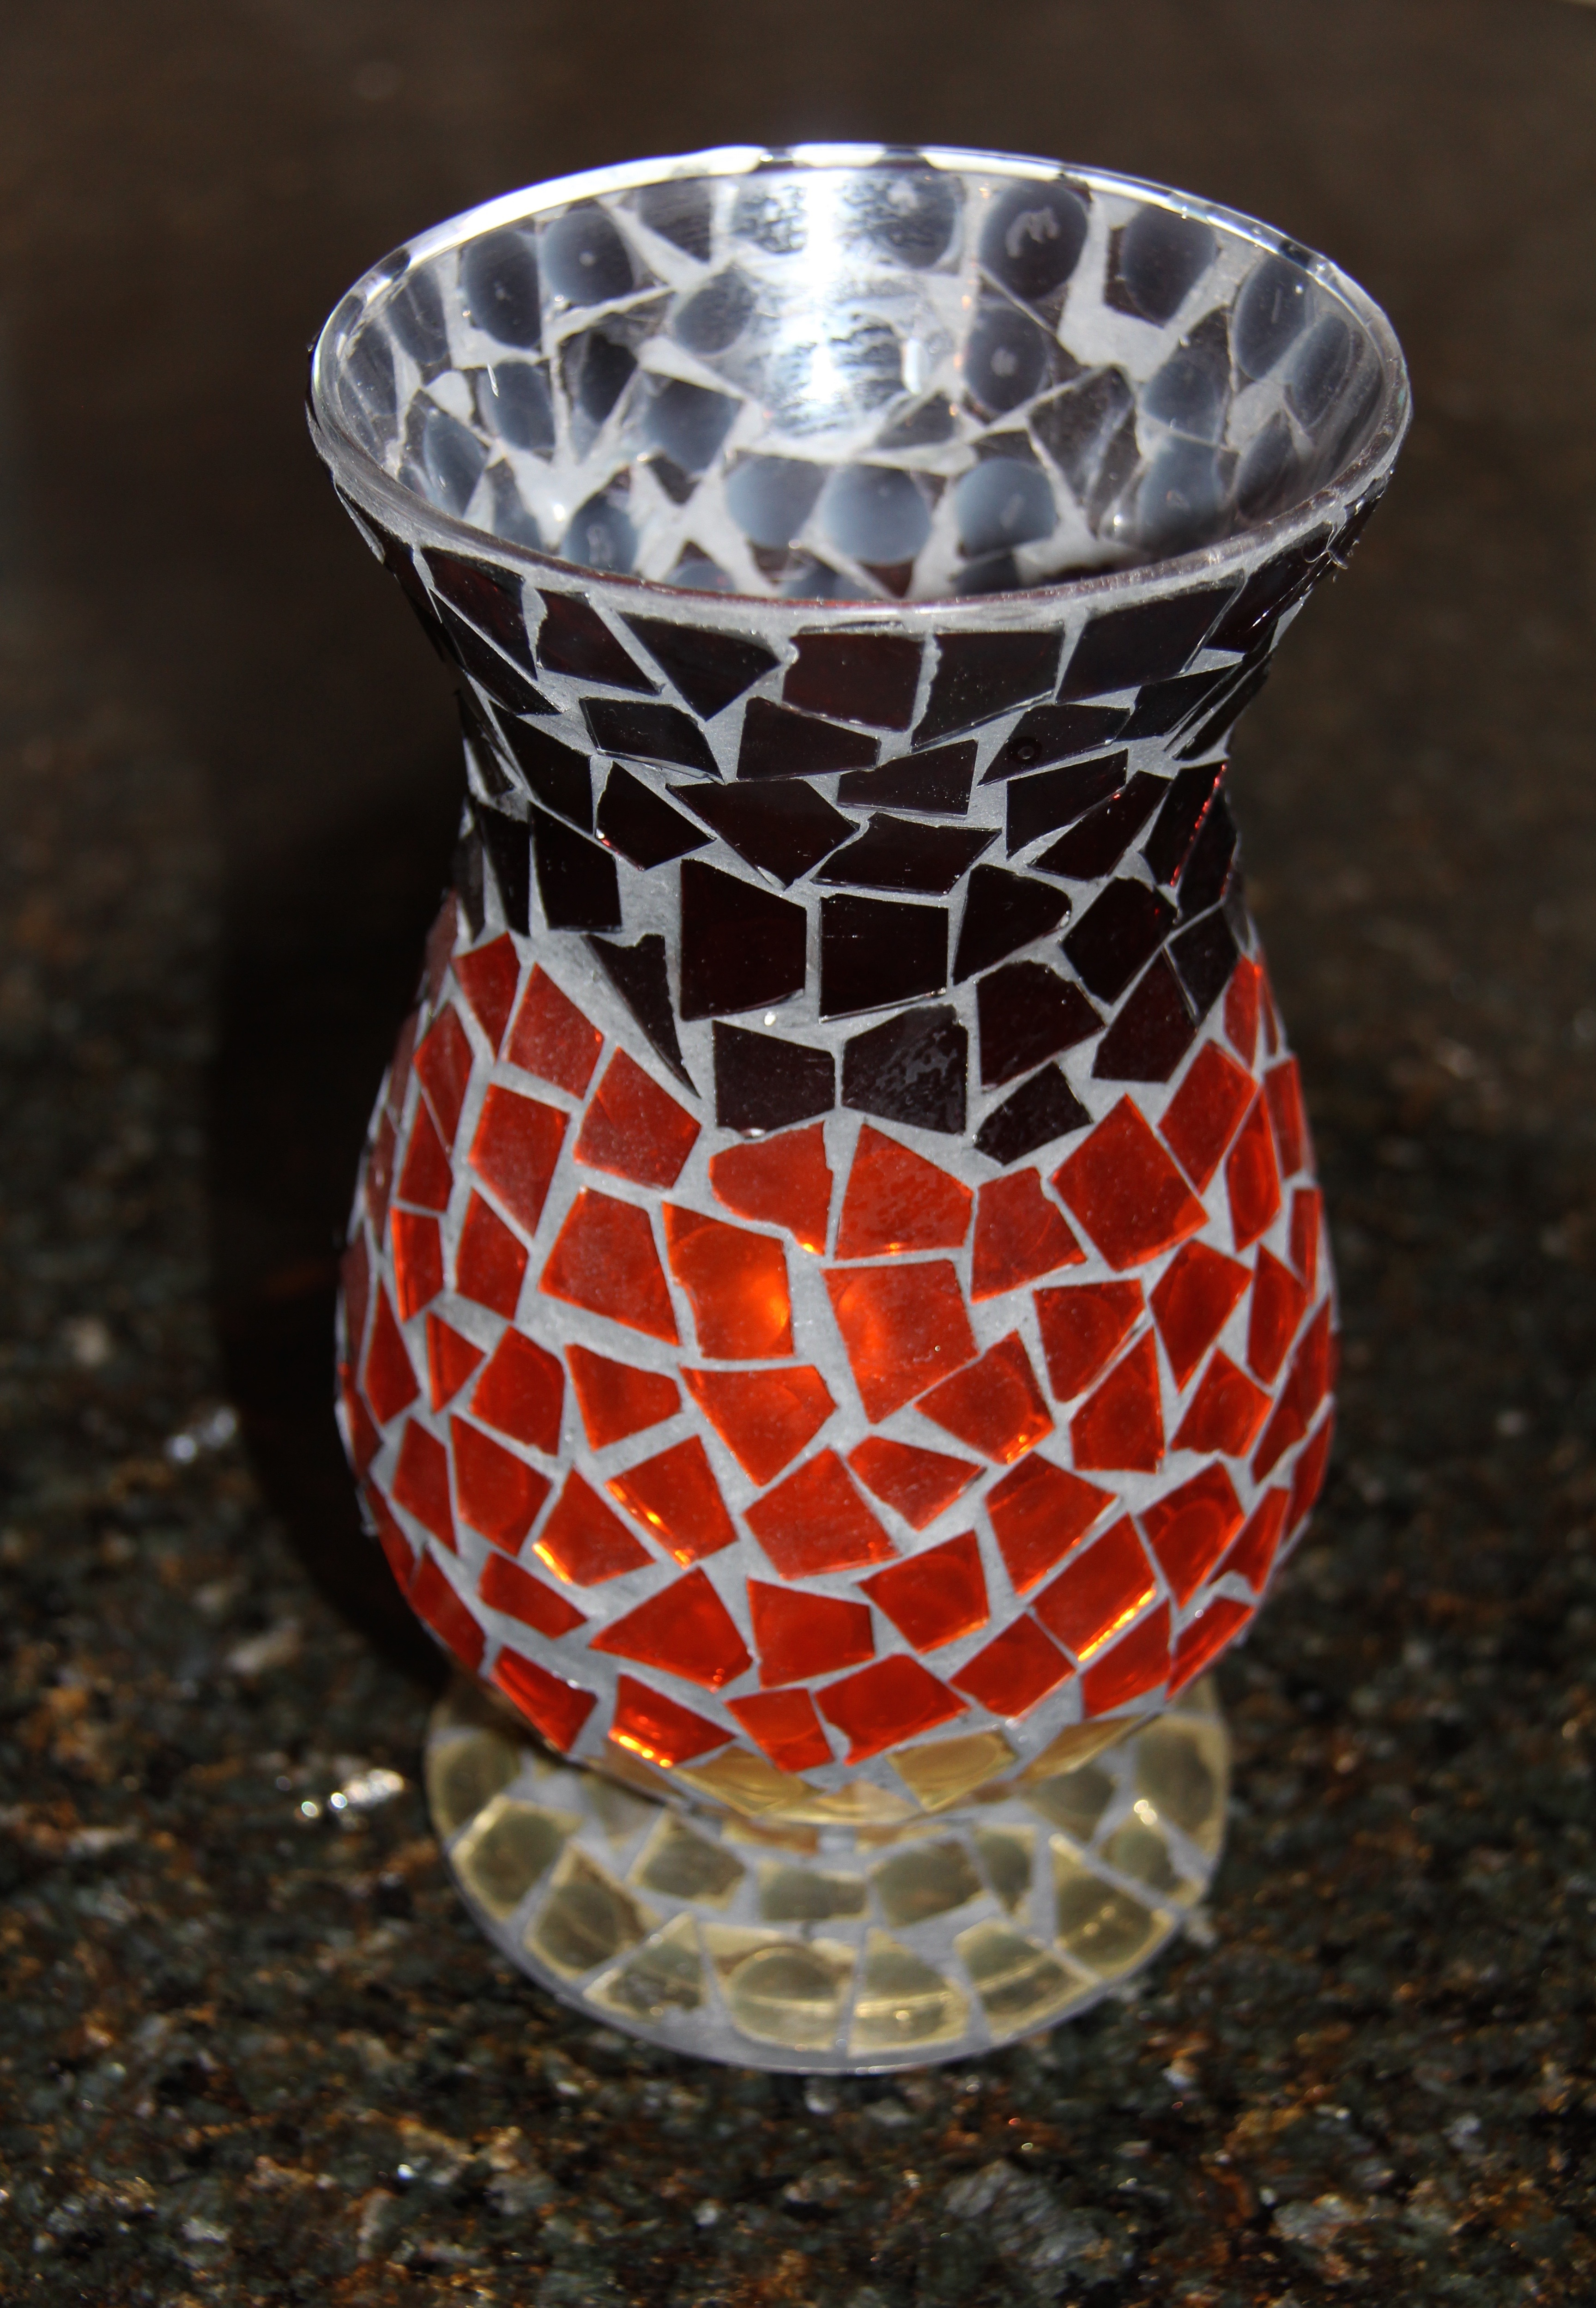 Life Shows Us How To Make A Beautiful Mosaic Vase Marcie Lyons